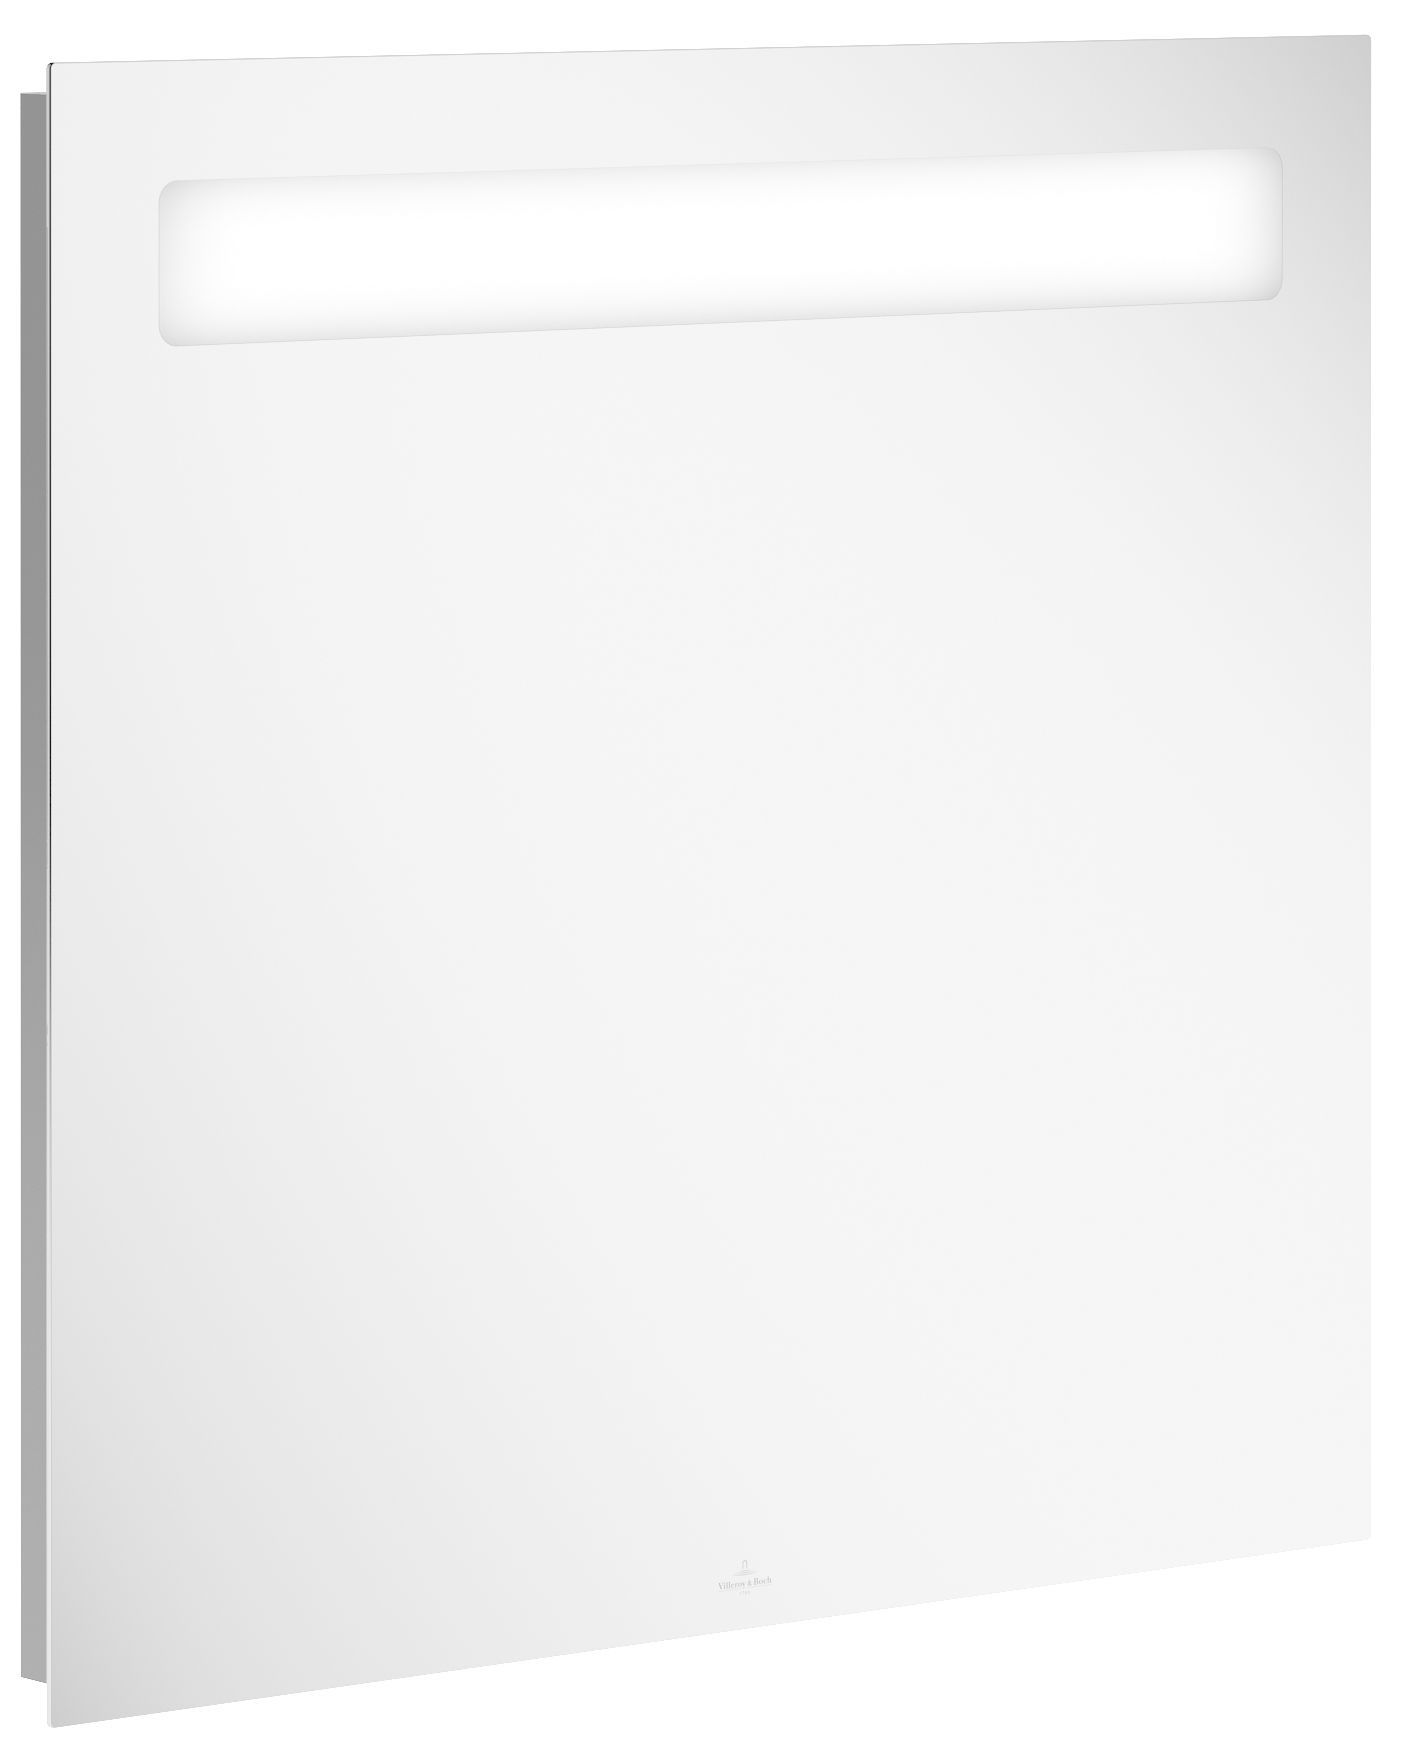 Villeroy & Boch More to See 14 Spiegel mit LED-Beleuchtung B:90 cm A4299000